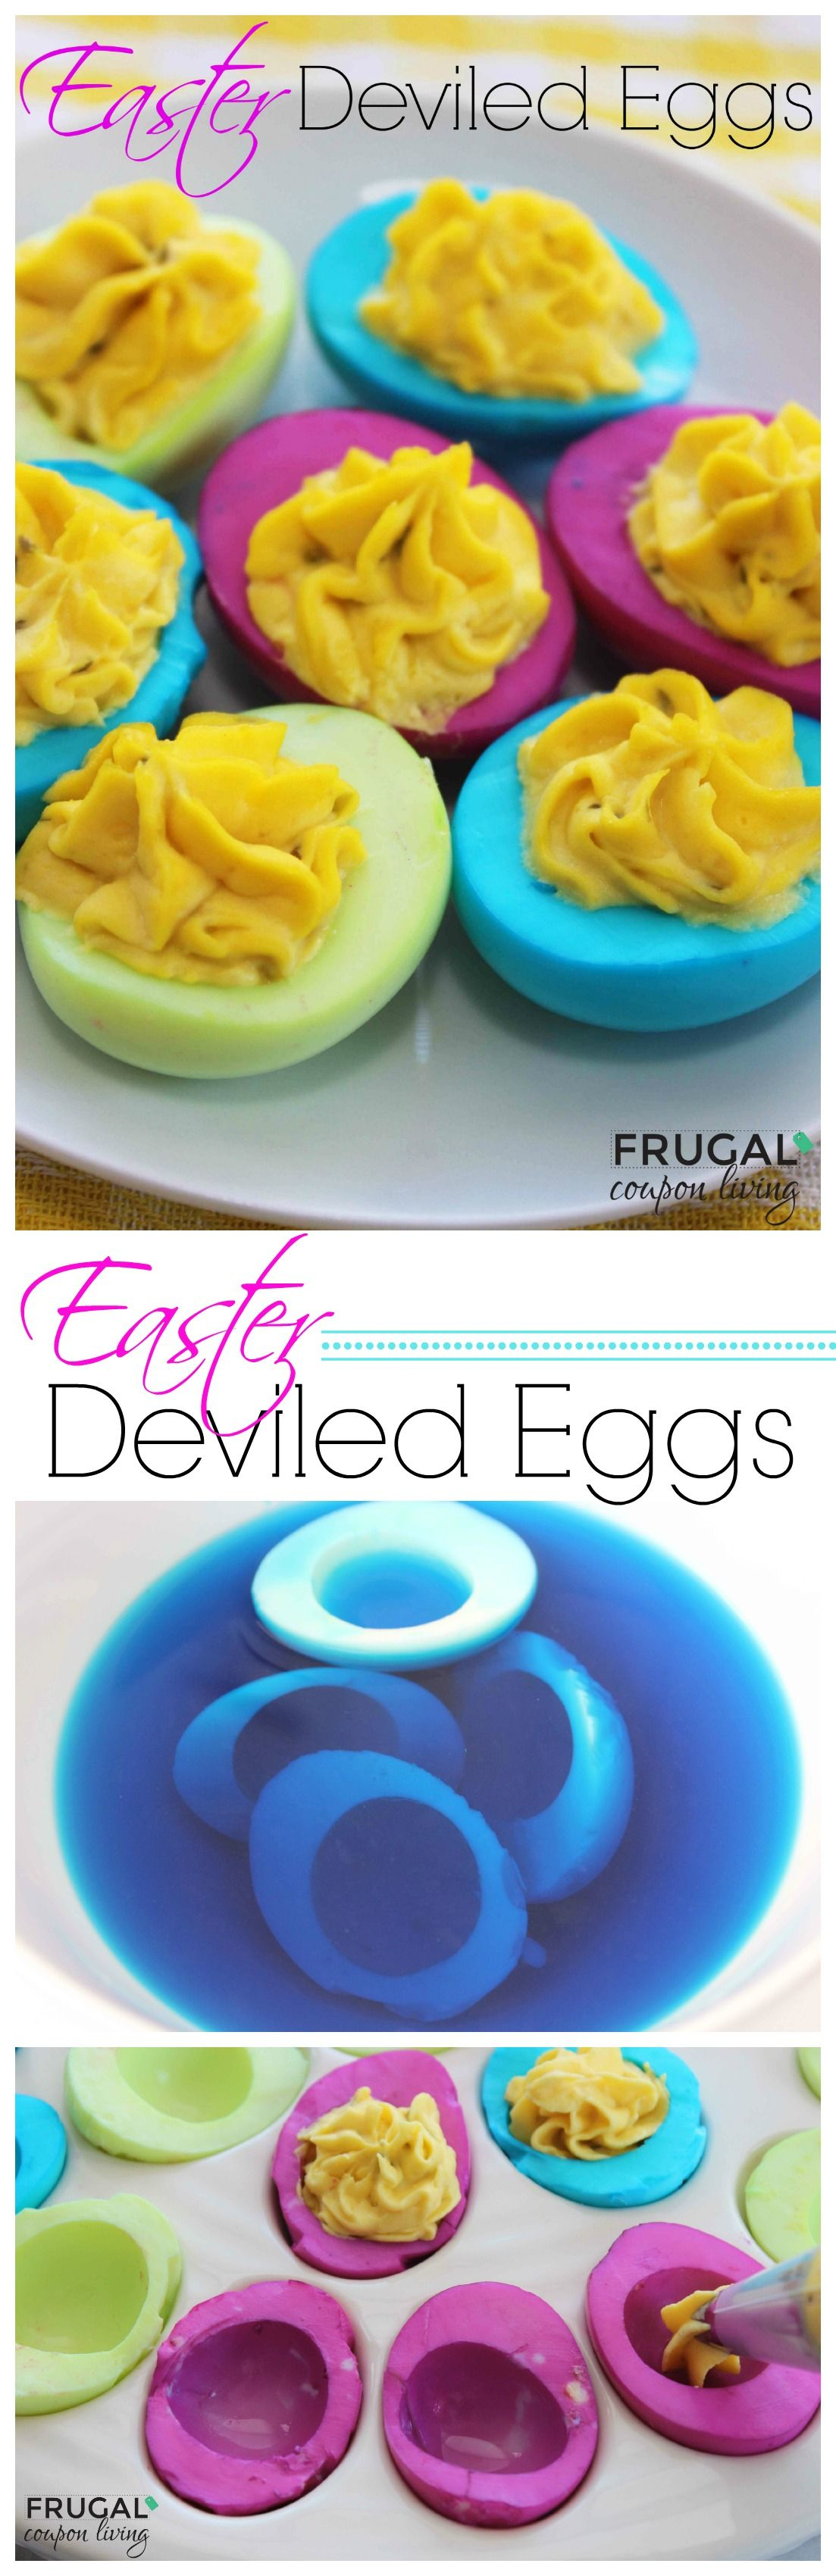 Easter deviled eggs tutorial on how to color the egg whites of easter deviled eggs tutorial on how to color the egg whites of your hard boiled eggs egg recipe idea on frugal coupon living forumfinder Gallery